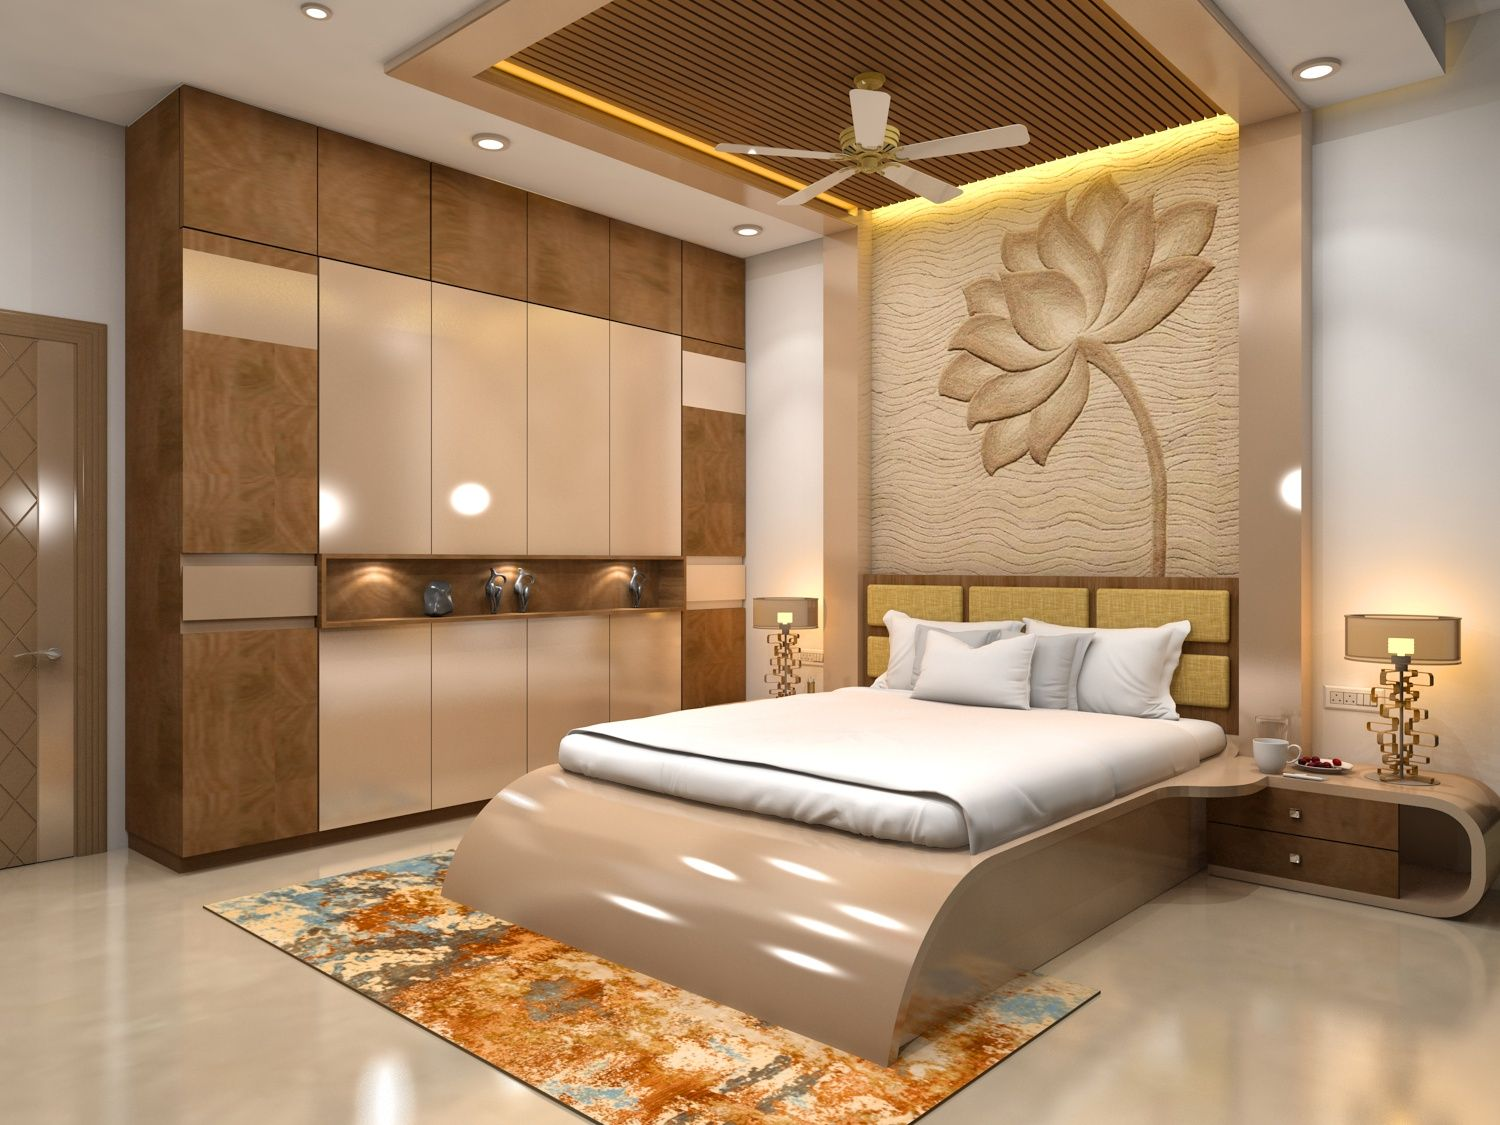 bedroom interior  Modern bedroom interior, Bedroom furniture